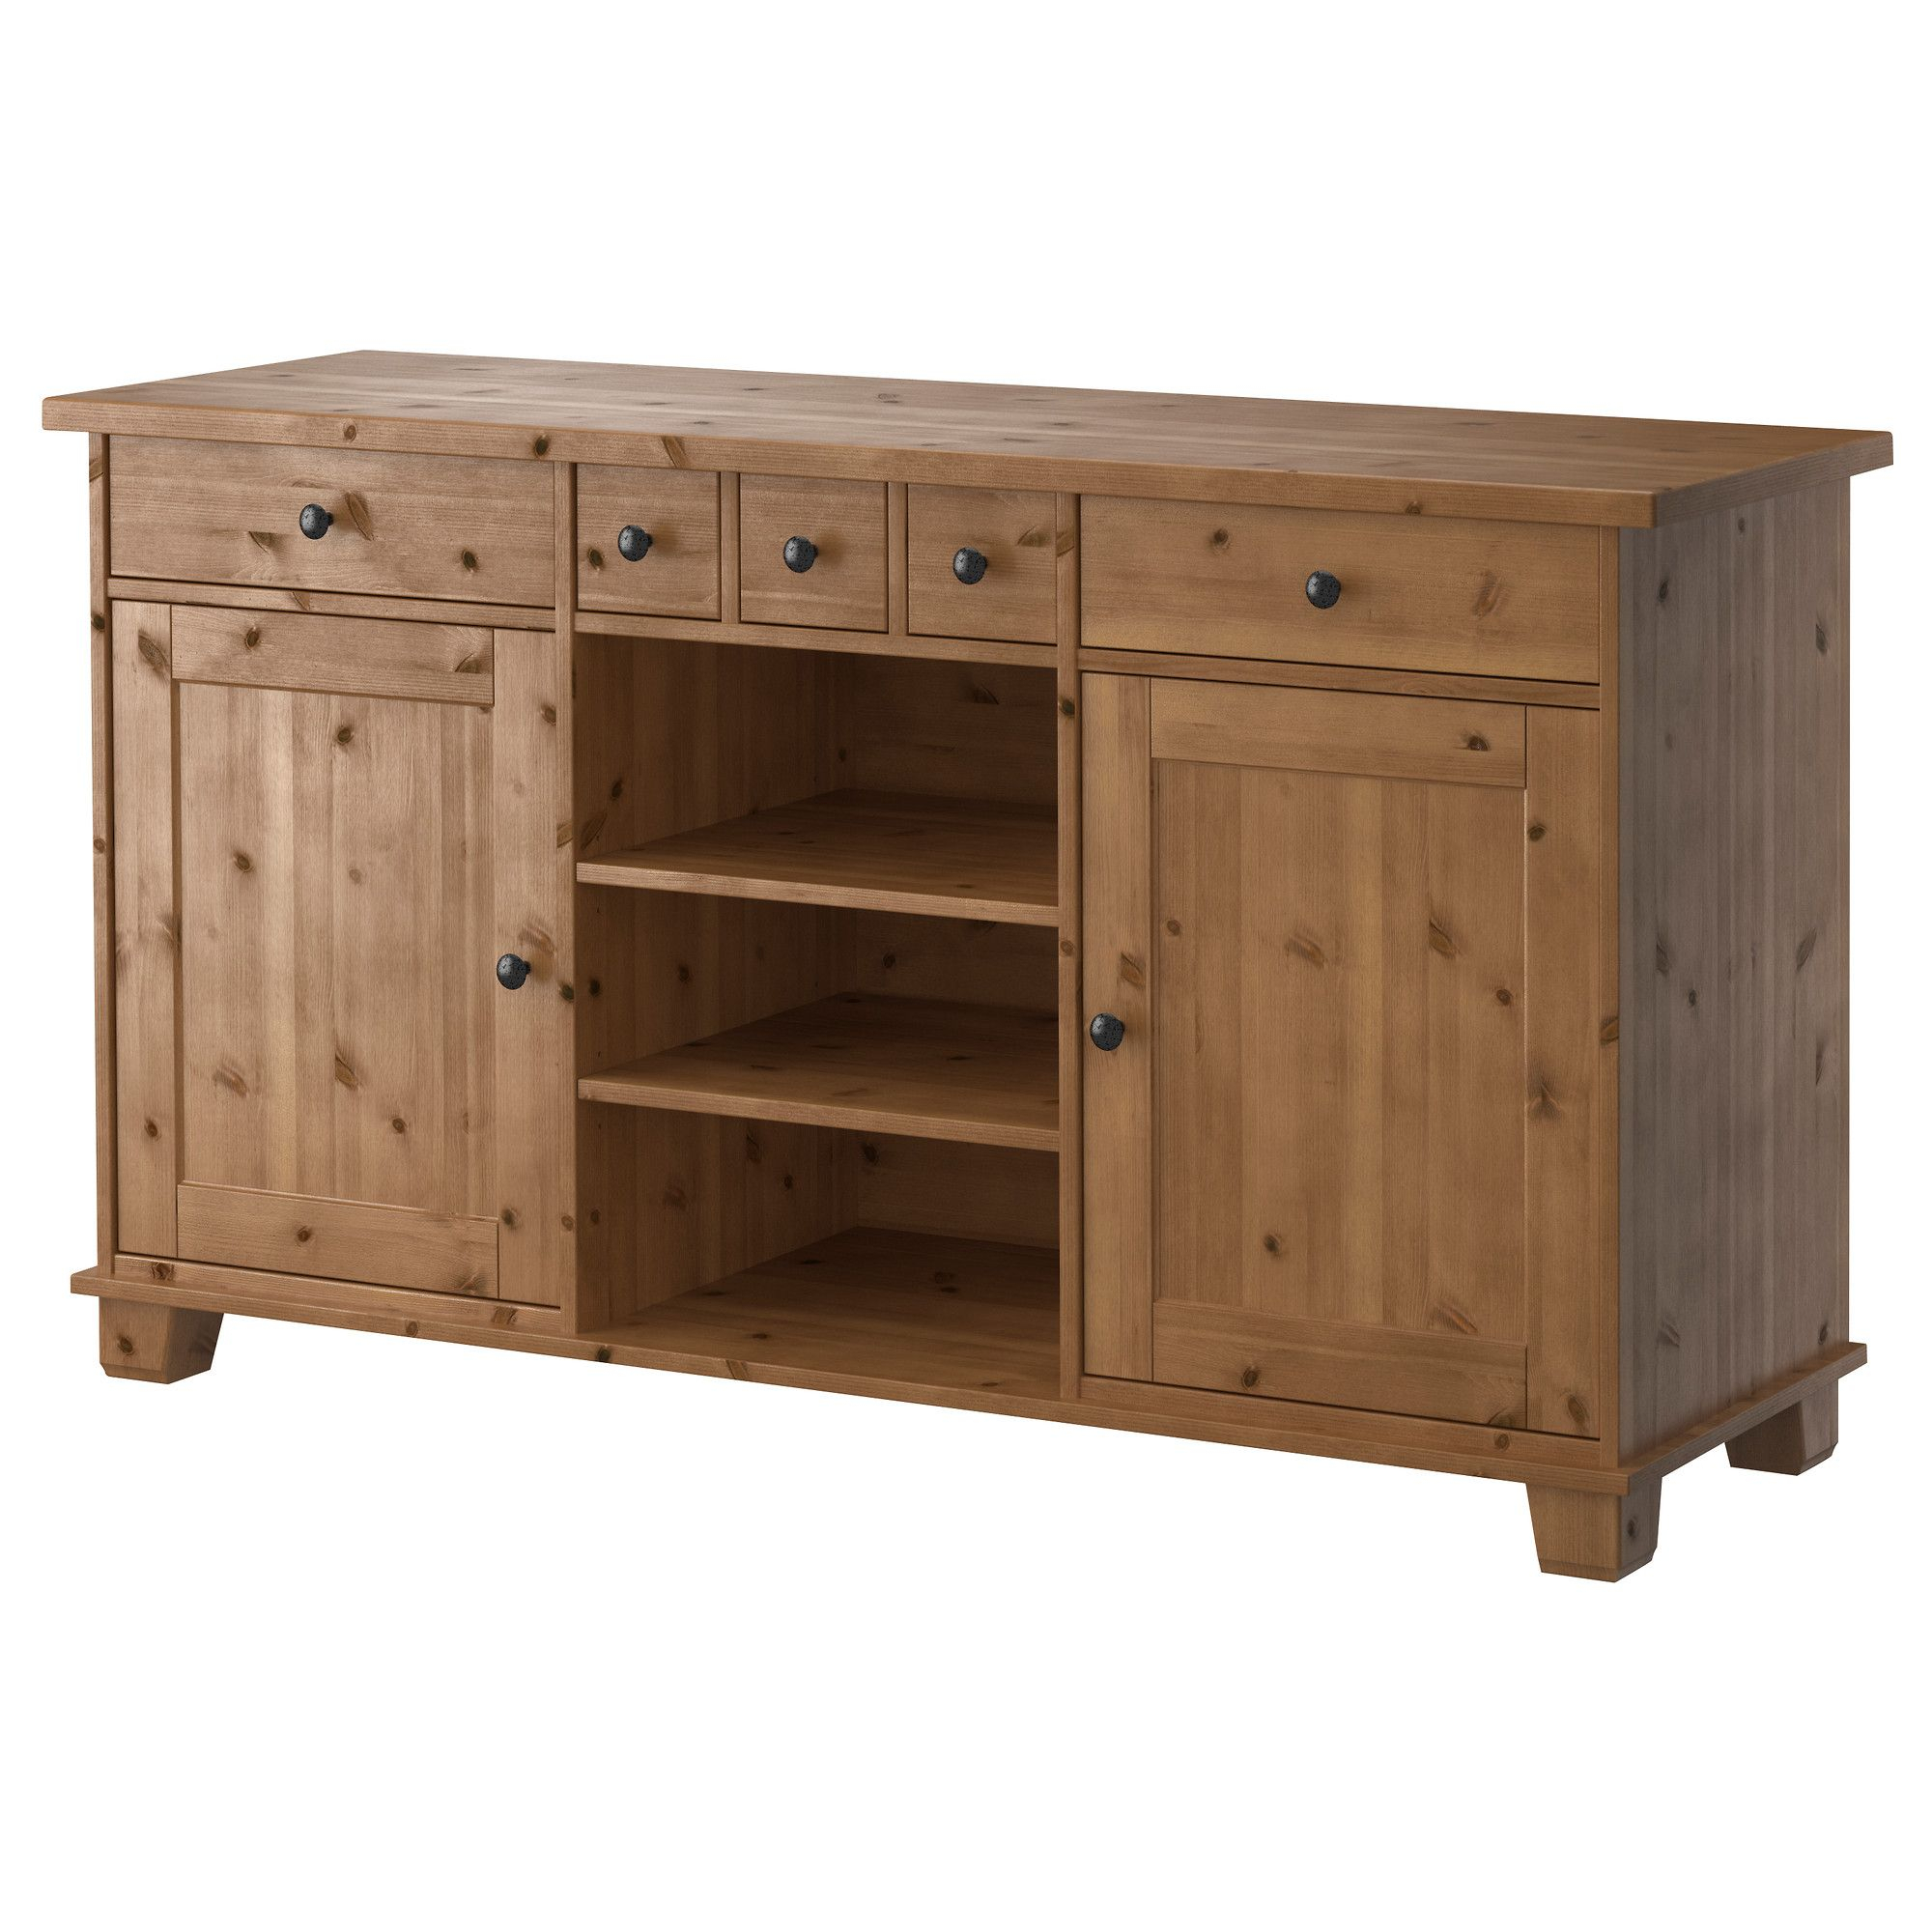 Shop For Furniture, Lighting, Home Accessories & More | Home Pertaining To Contemporary Style Wooden Buffets With Two Side Door Storage Cabinets (View 22 of 30)